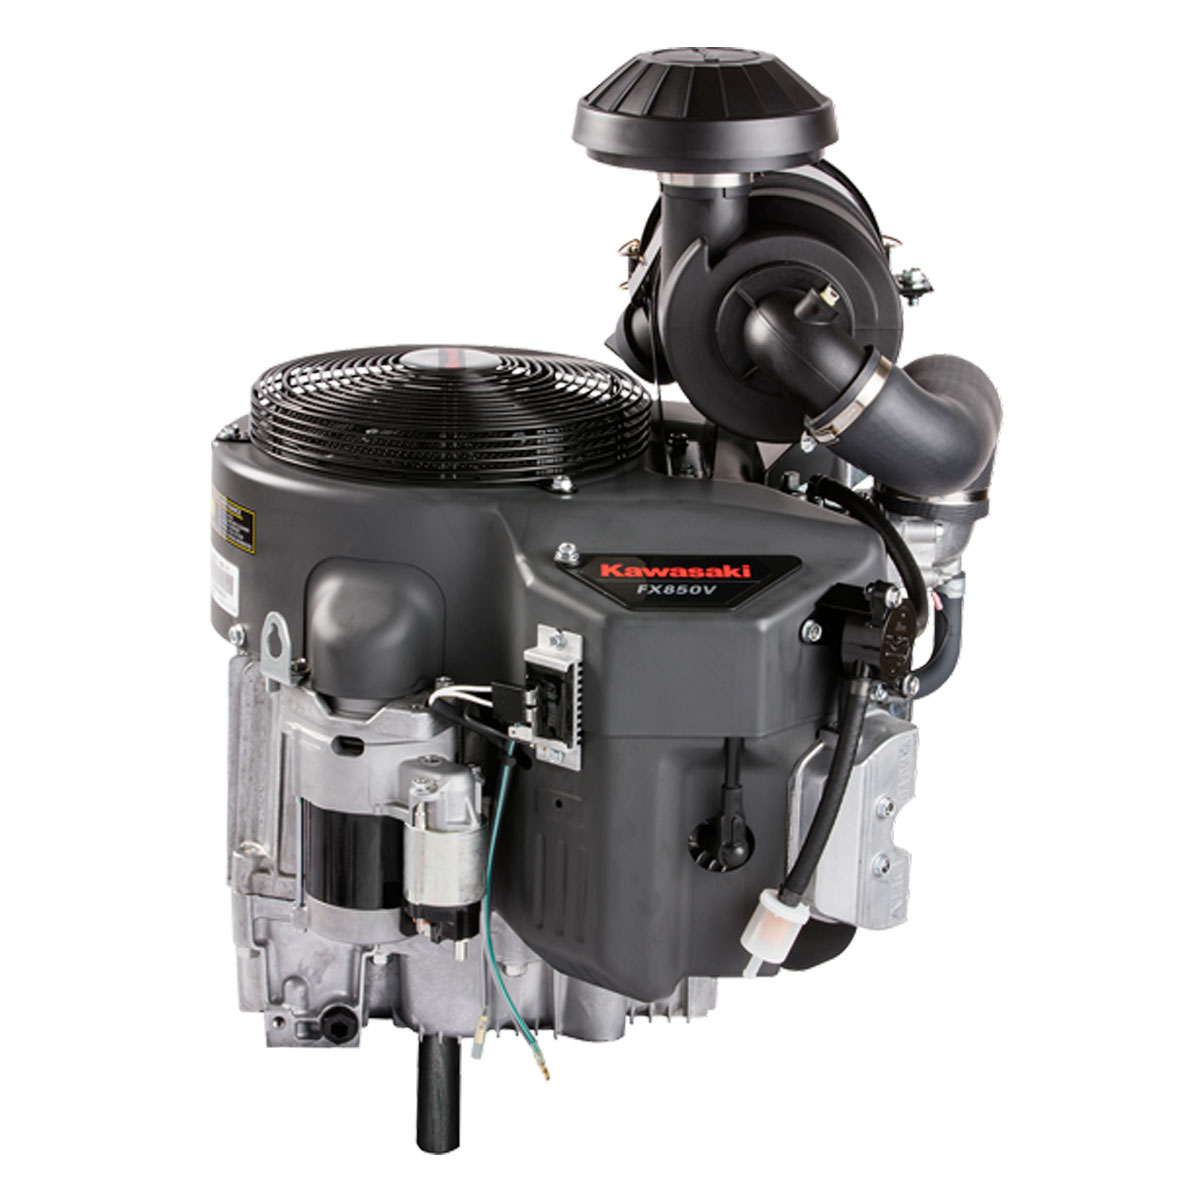 FX850V 27 HP Vertical Engine